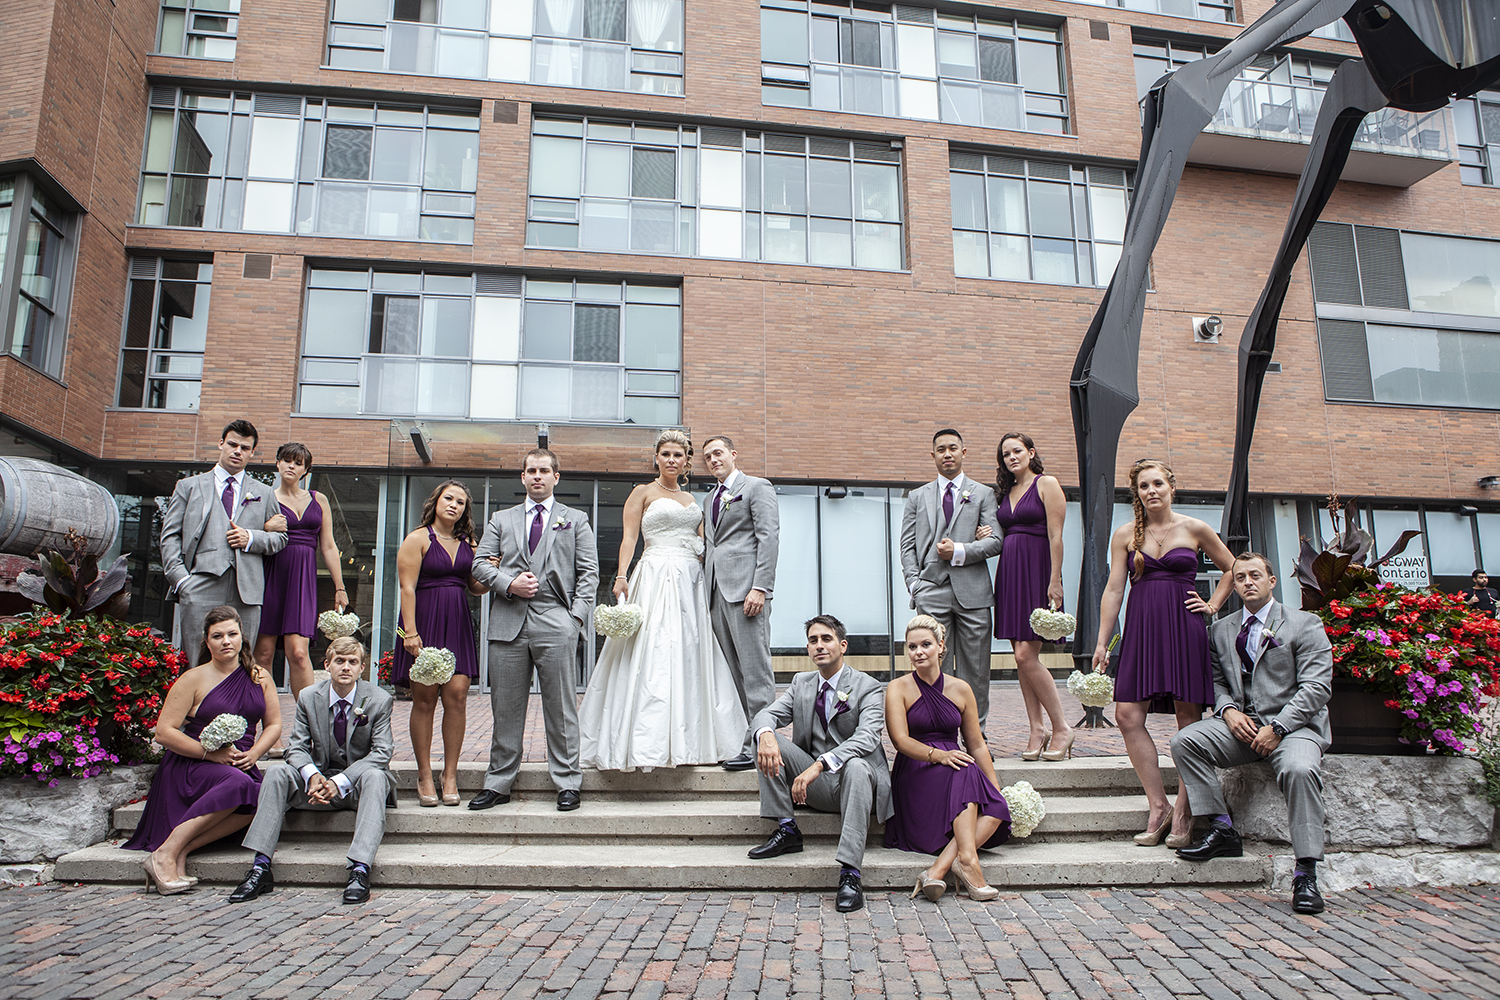 The Bridal Party poses in Toronto's Distillery District